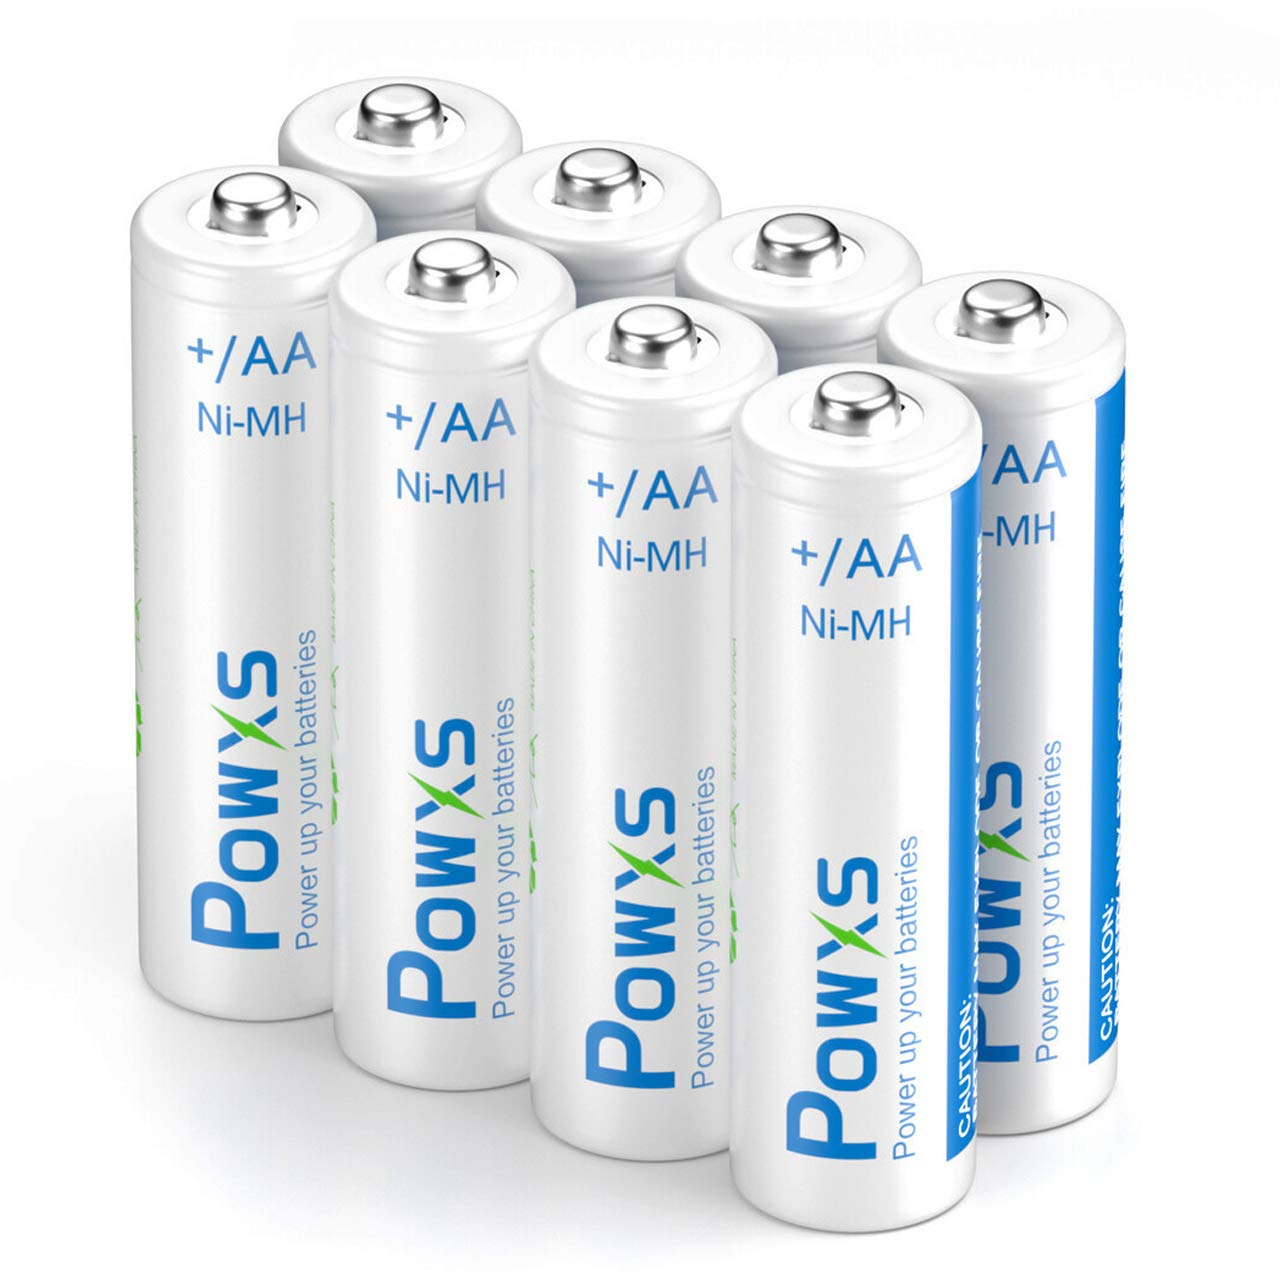 POWXS AA Rechargeable Batteries, 1.2V 2000mAh Ni-MH Pre-Charged Double A Battery for Xbox Controllers, Toys, Remote Controls and More, 8 Counts